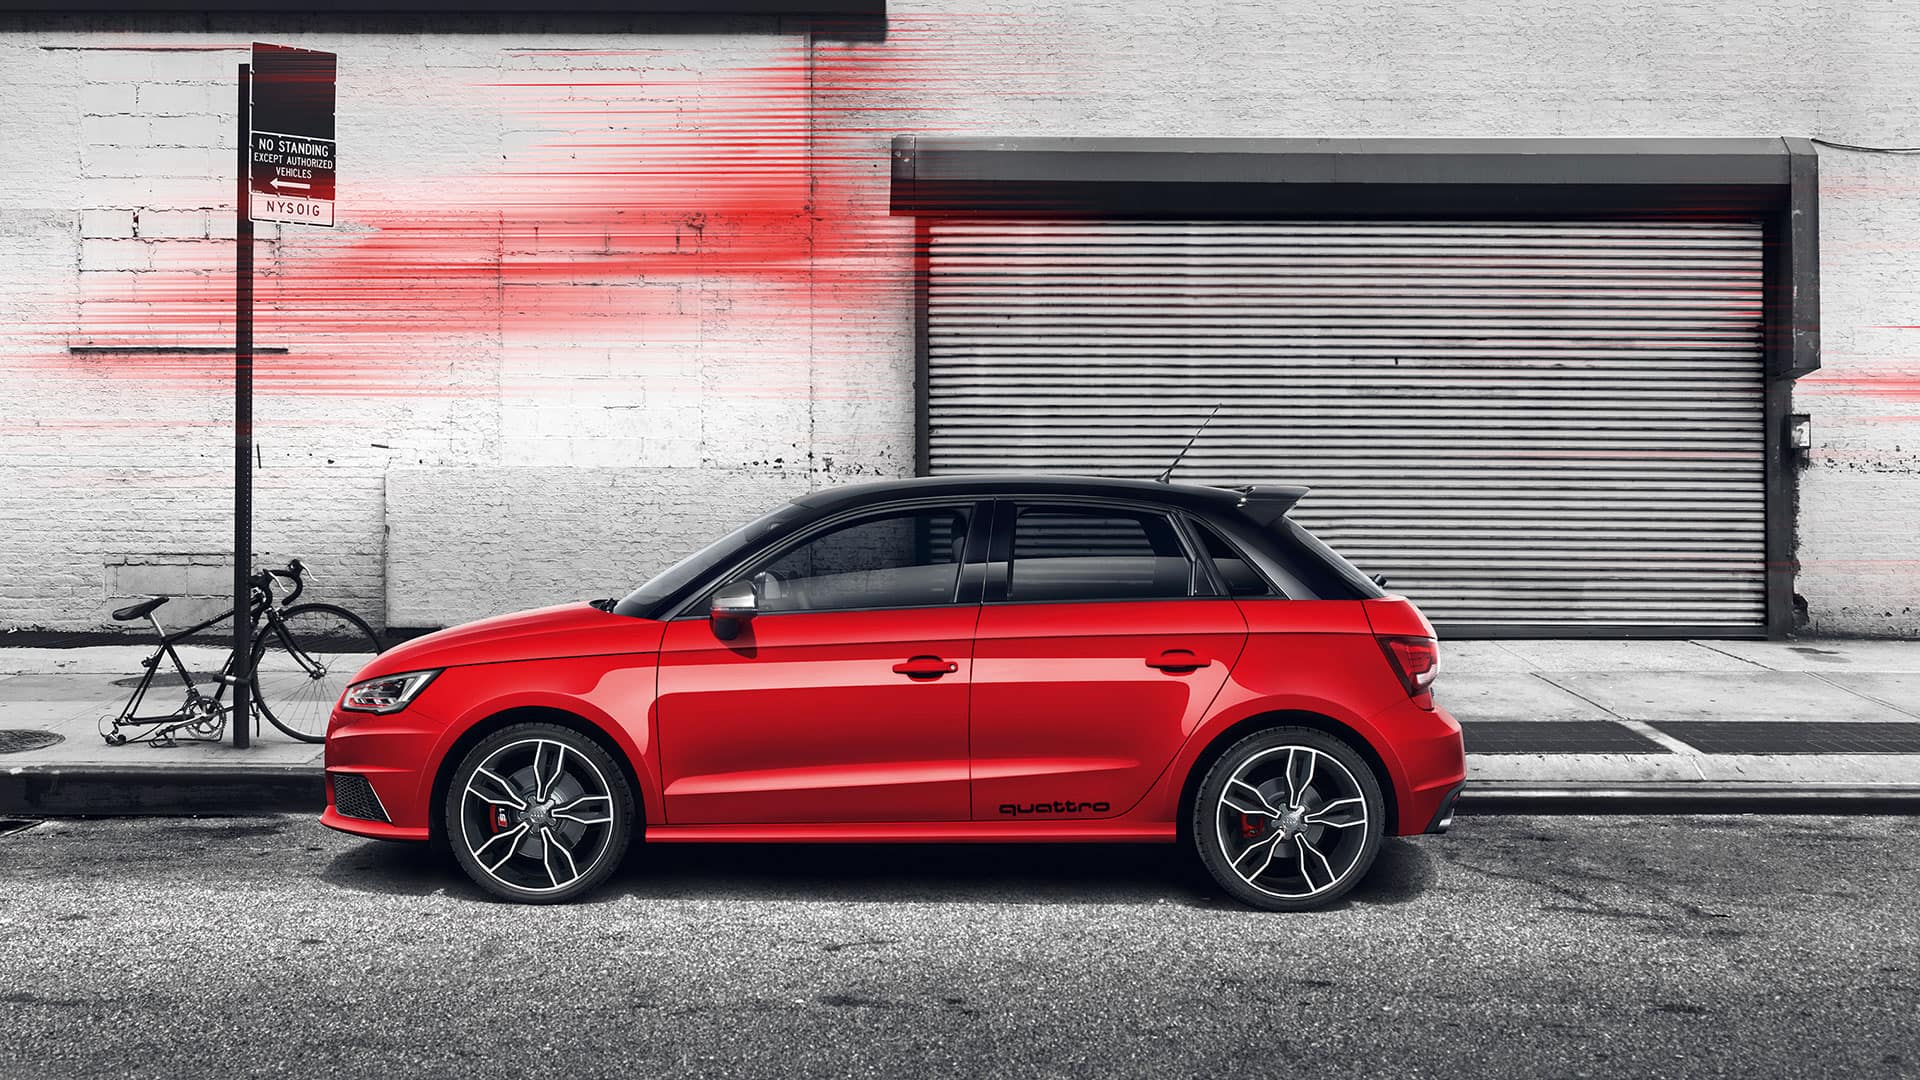 audi s1 sportback compact car audi australia a1 audi australia official website luxury. Black Bedroom Furniture Sets. Home Design Ideas